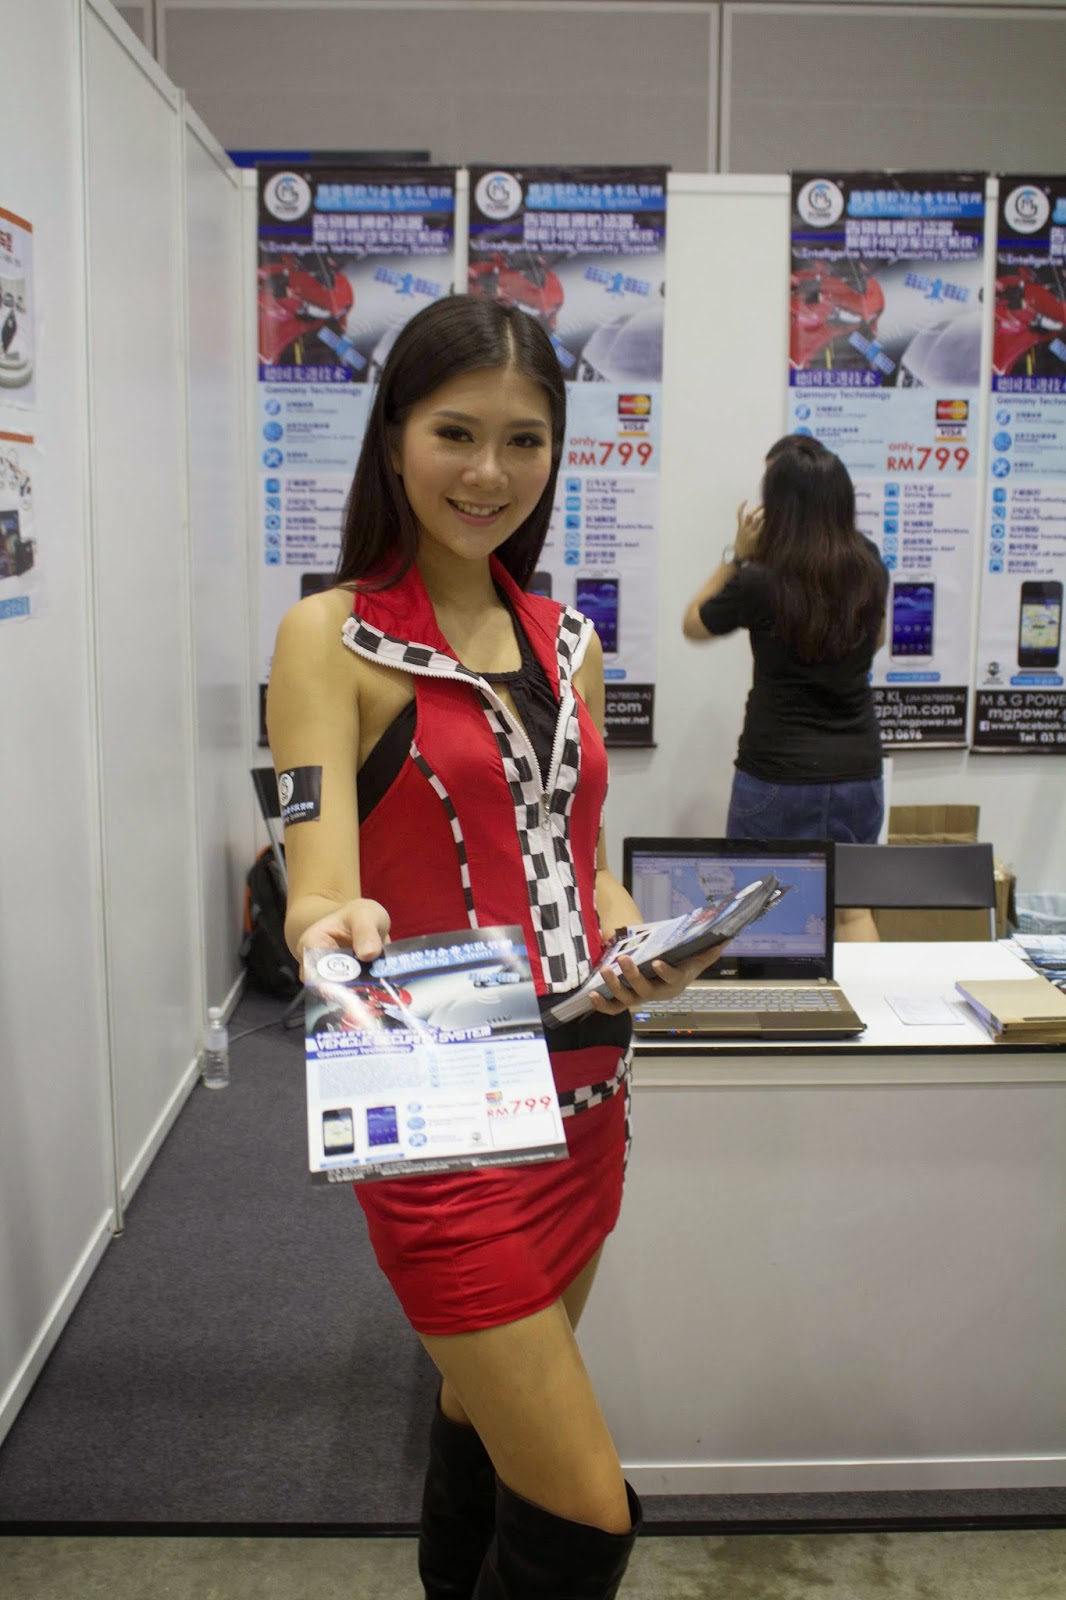 Coverage of PIKOM PC Fair 2014 @ Kuala Lumpur Convention Center 383